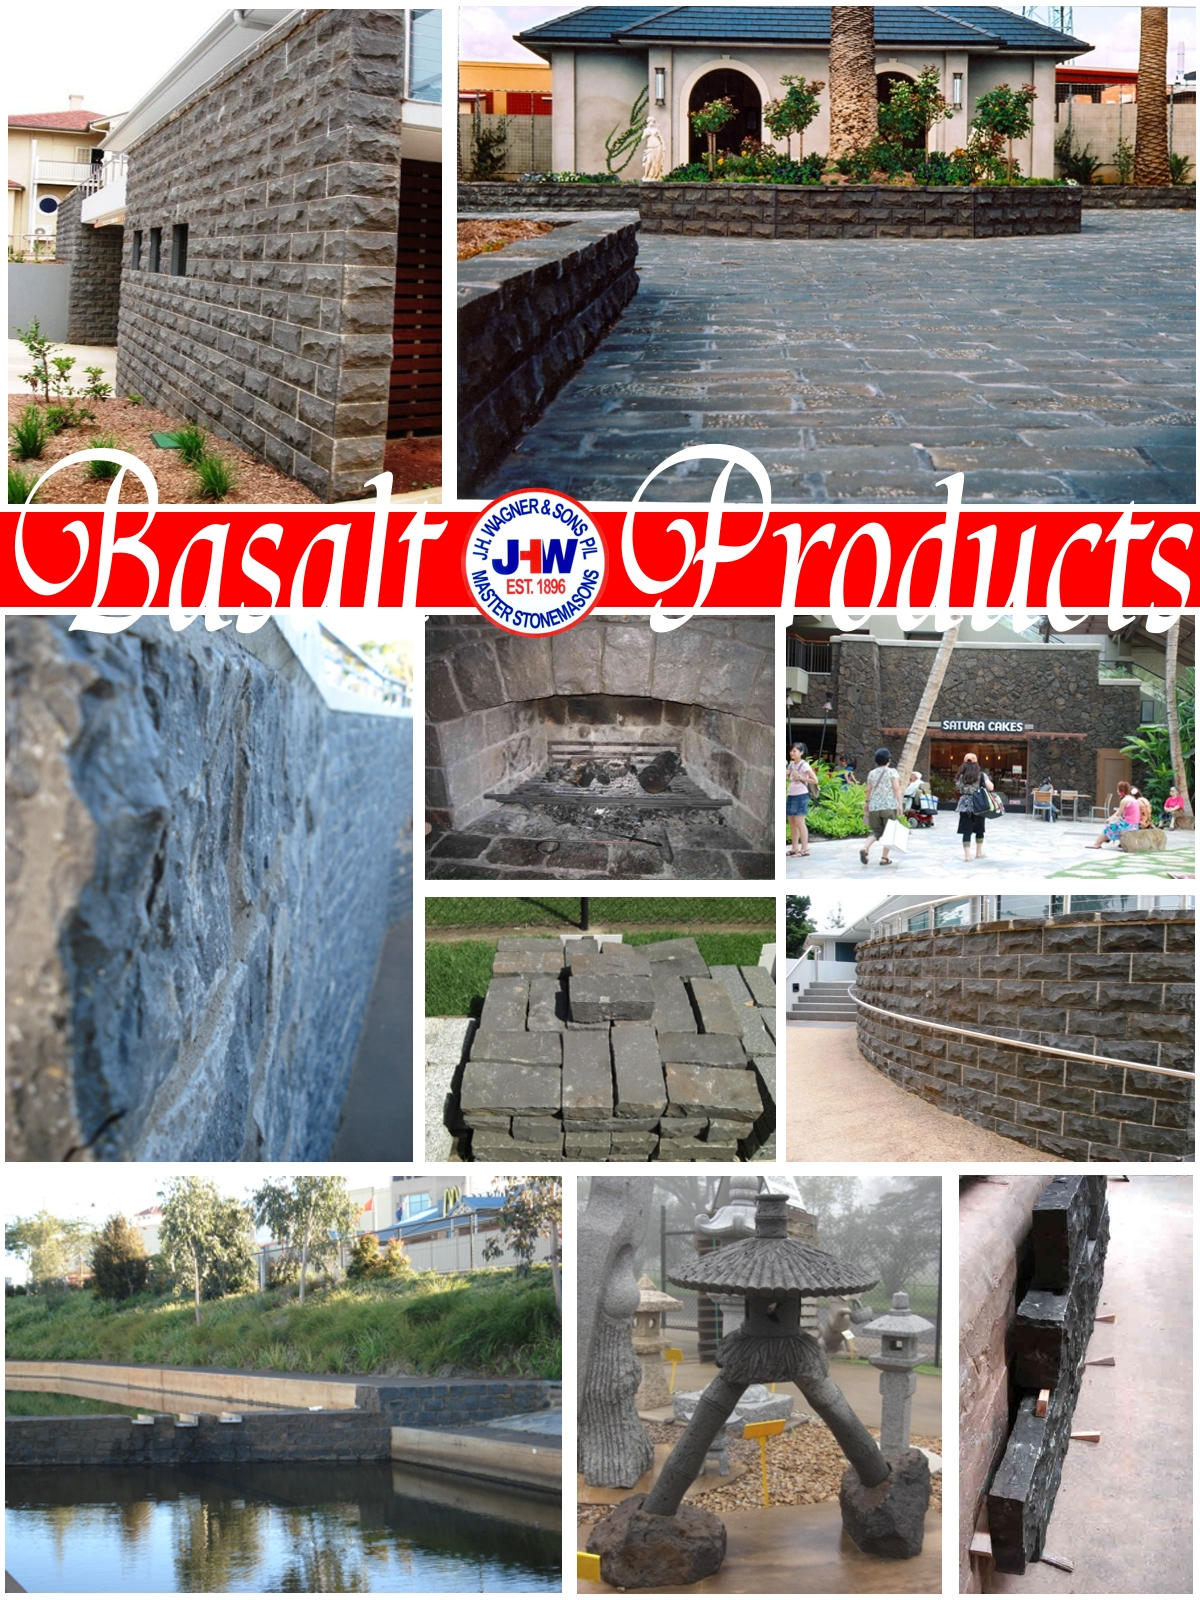 Basalt Products by J.H. Wagner & Sons